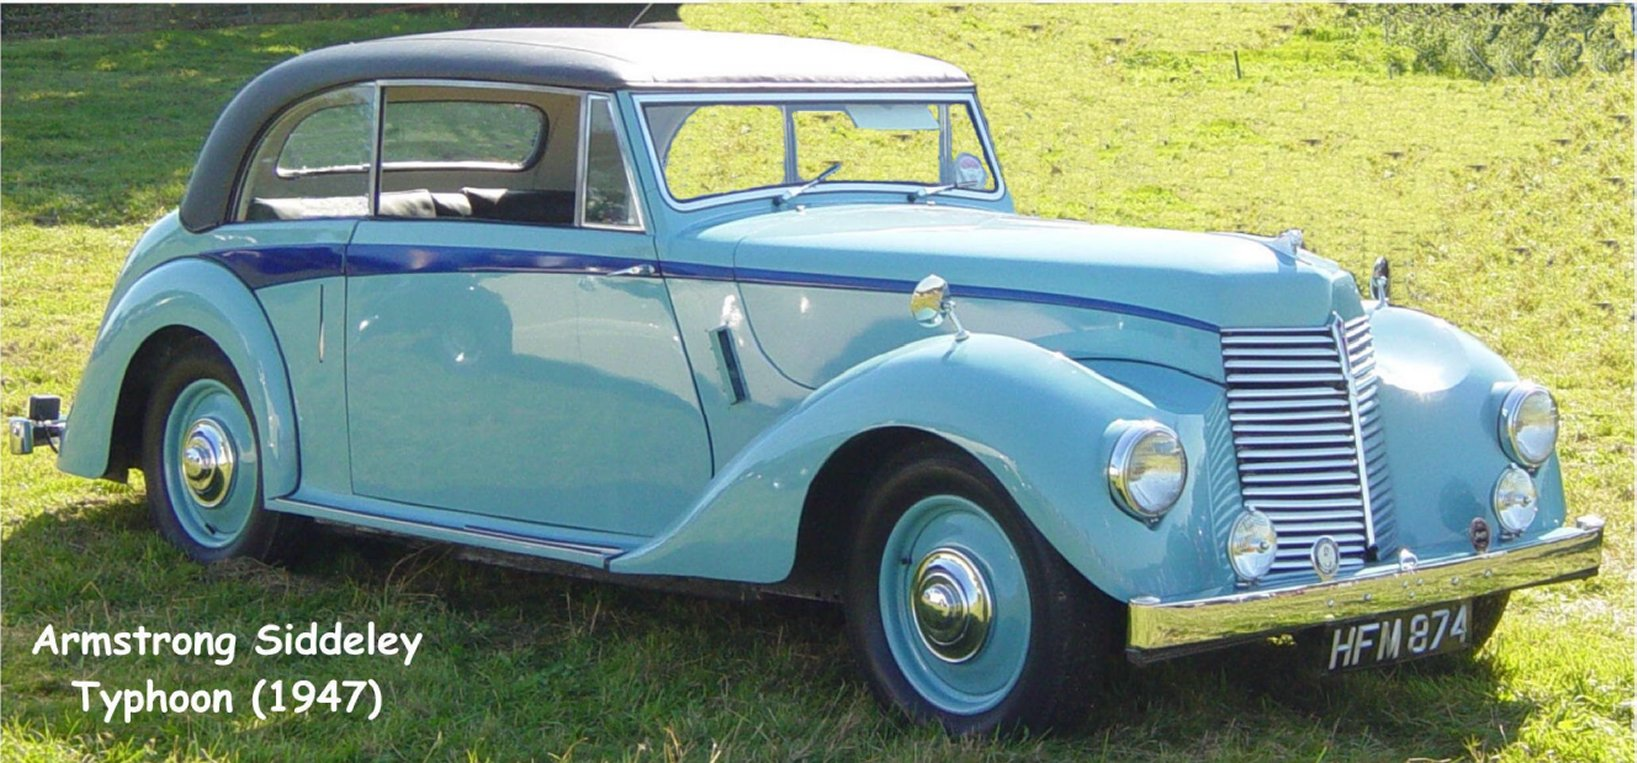 1958 Armstrong Siddeley Typhoon